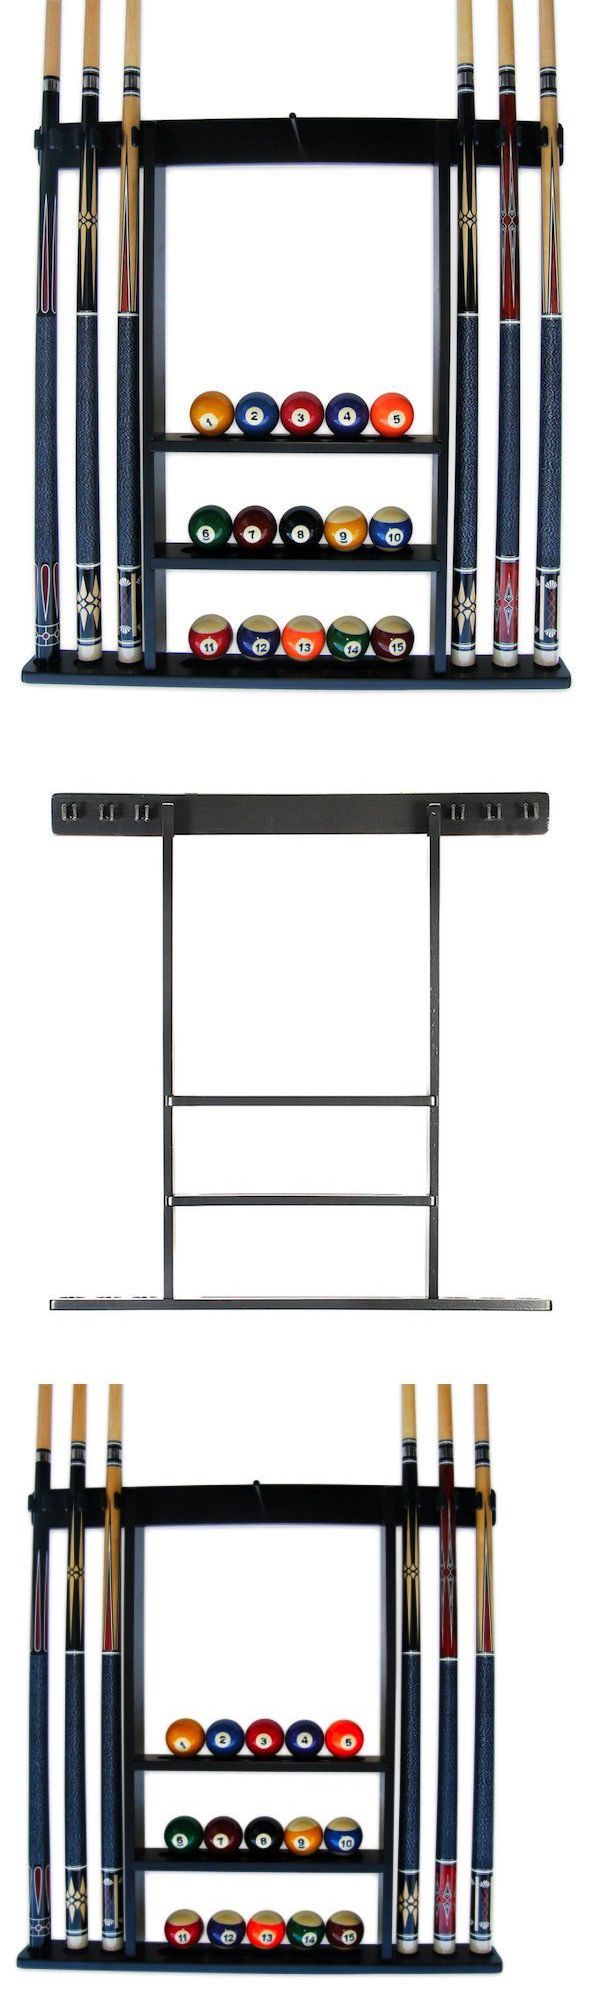 Ball and Cue Racks 75185: Black Pool Cue Rack Billiard Supply Ball Stick Storage Holder Table Accessories -> BUY IT NOW ONLY: $65.95 on eBay!